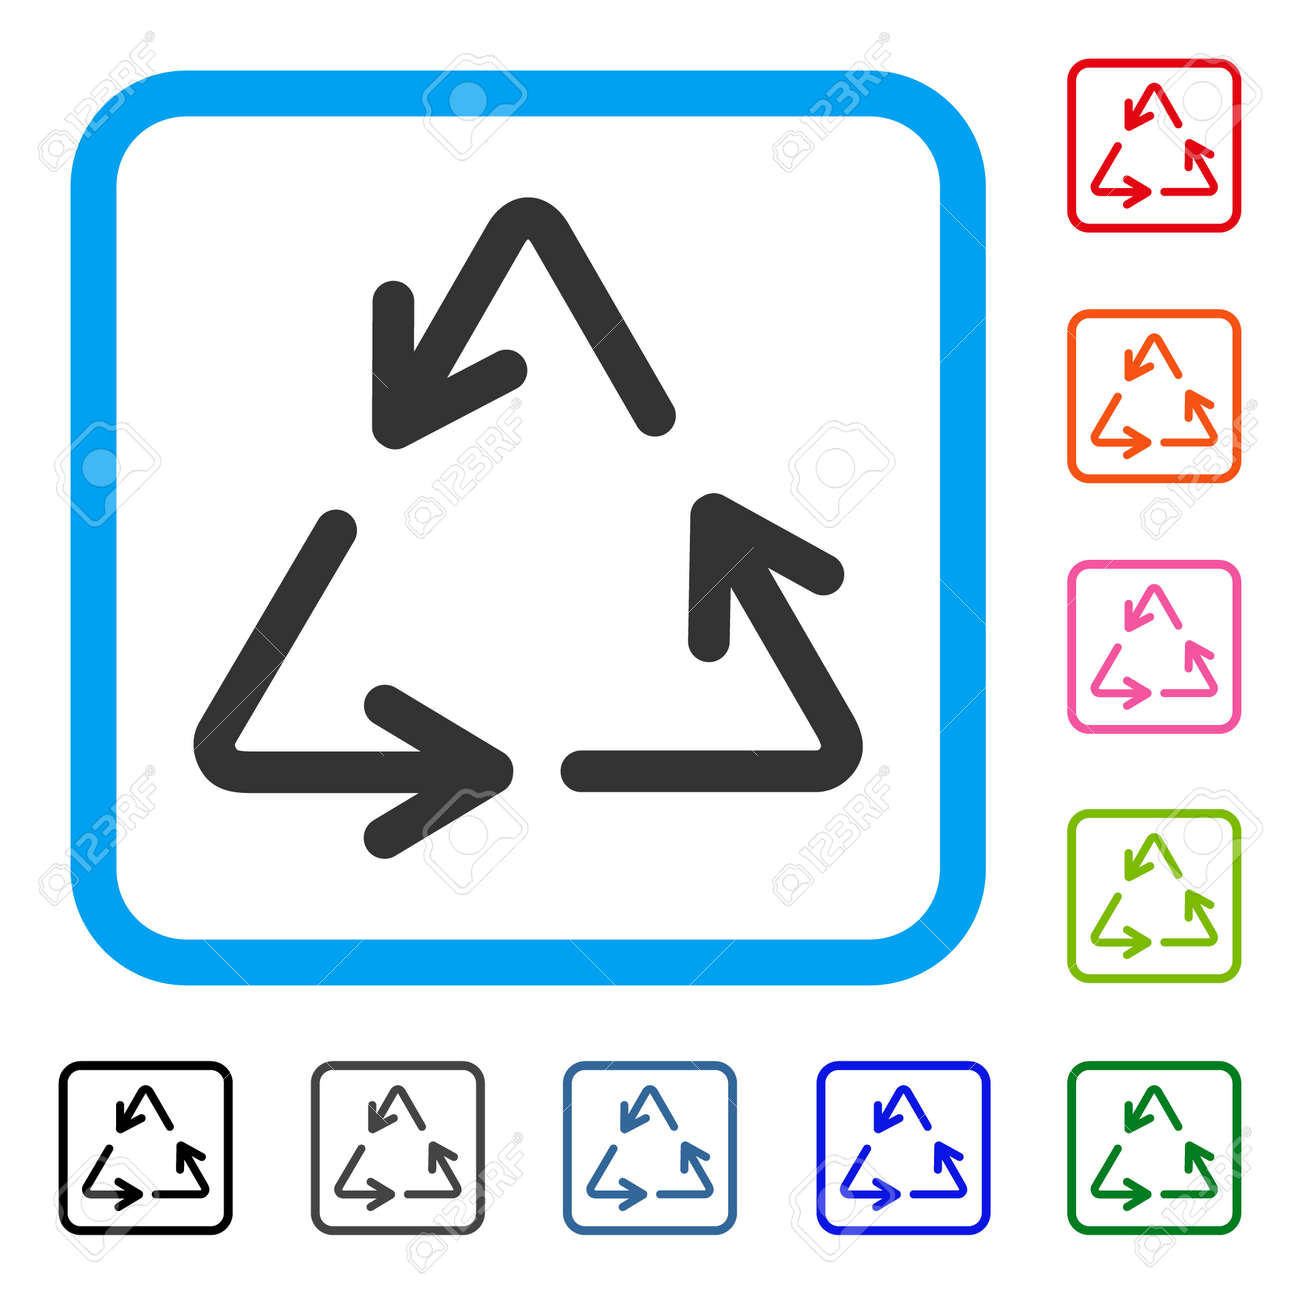 Recycle Arrows Icon Flat Gray Pictogram Symbol Inside A Light